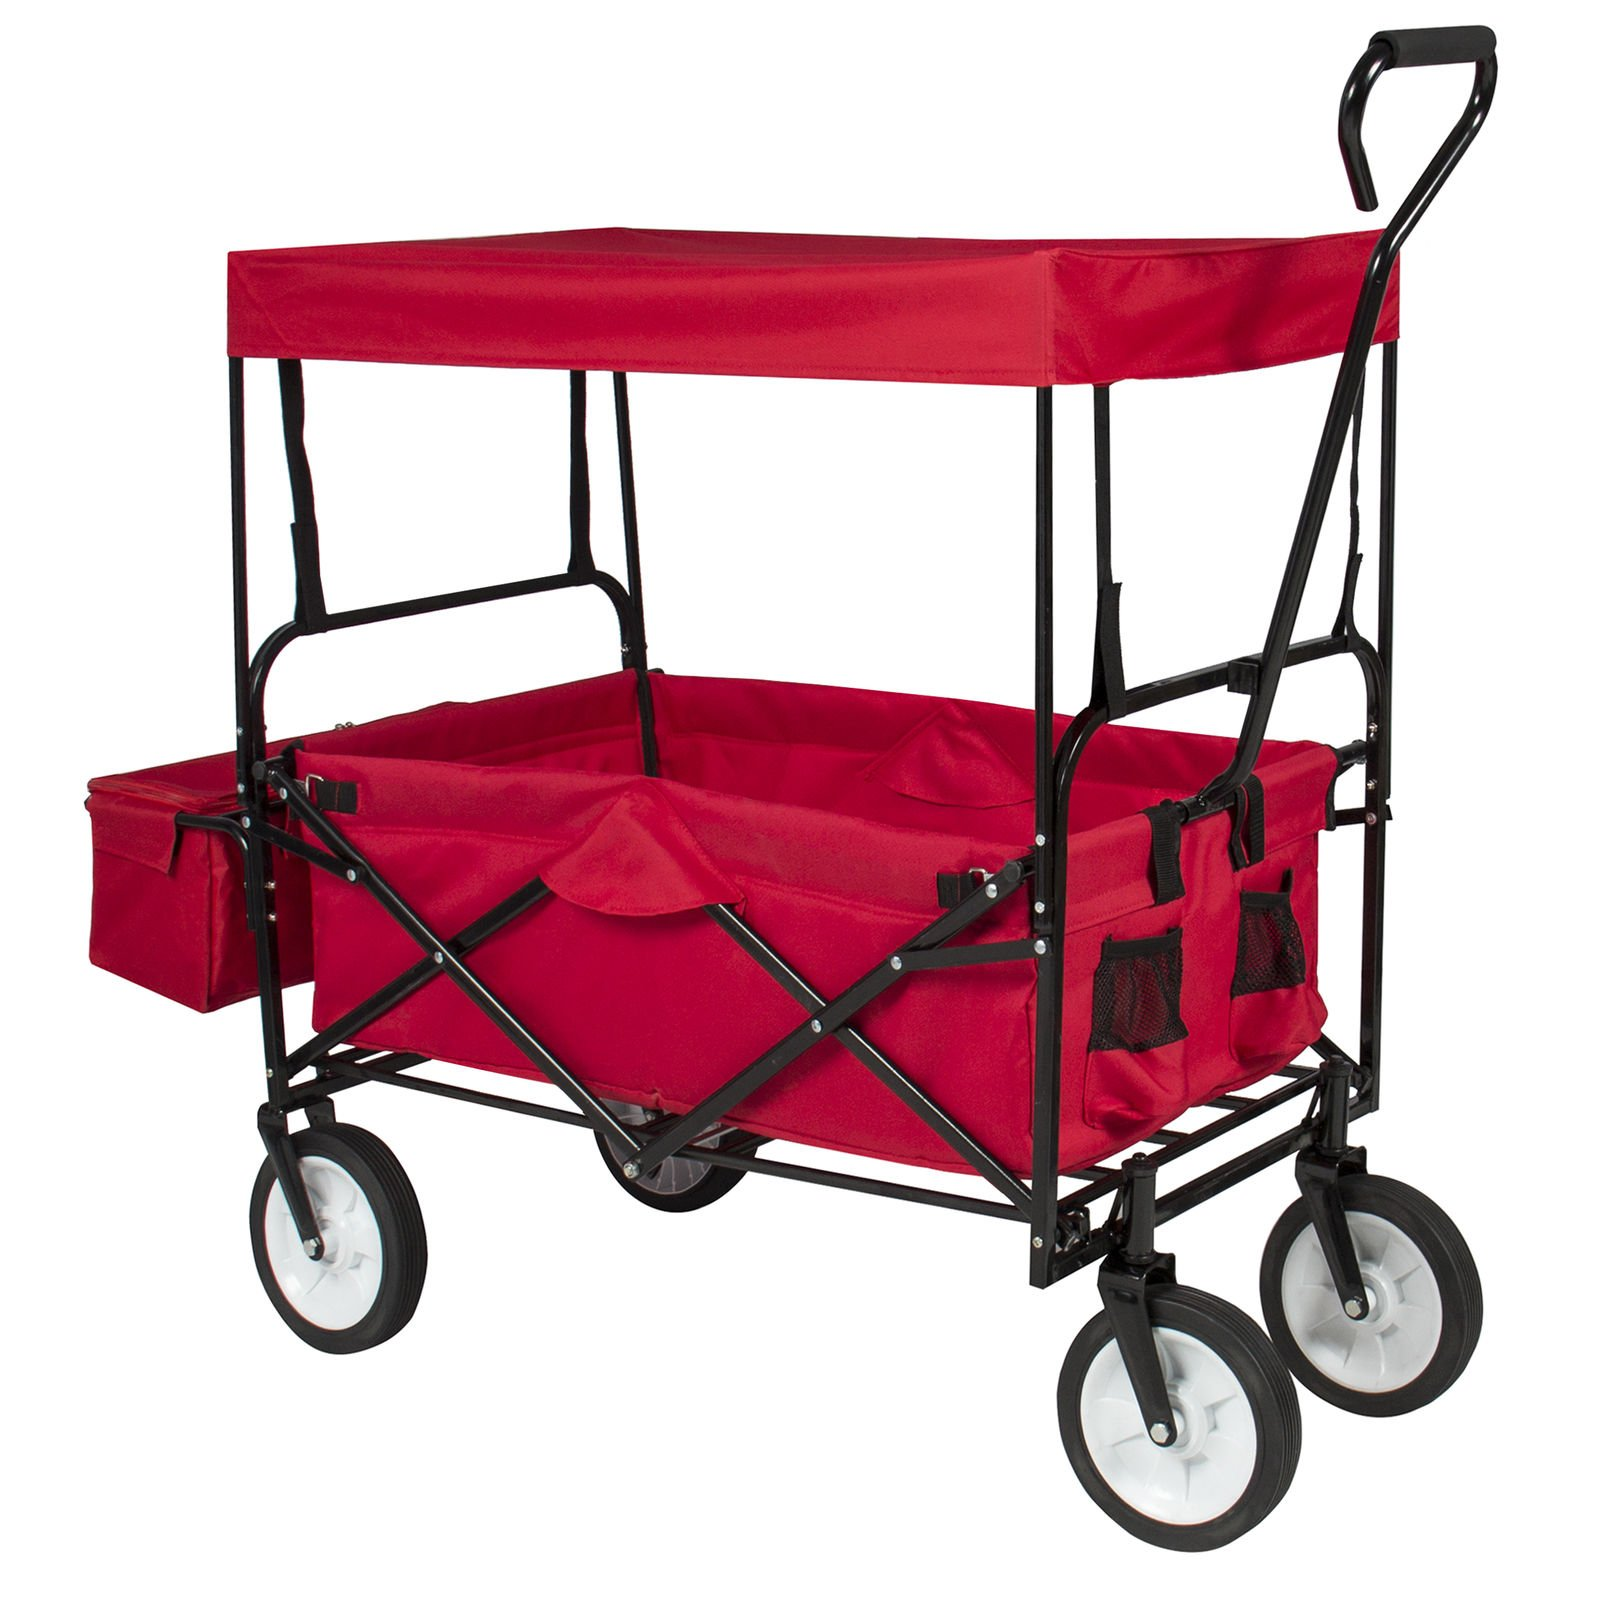 Garden Cart Utility Wagons Scooters with Removeable Canopy Patio Lawn Farm Ranch Material Transport Replacement Part Service Beach Camping Grocery Handling Equipment Folding Utility Home Improvement by Prettyshop4246